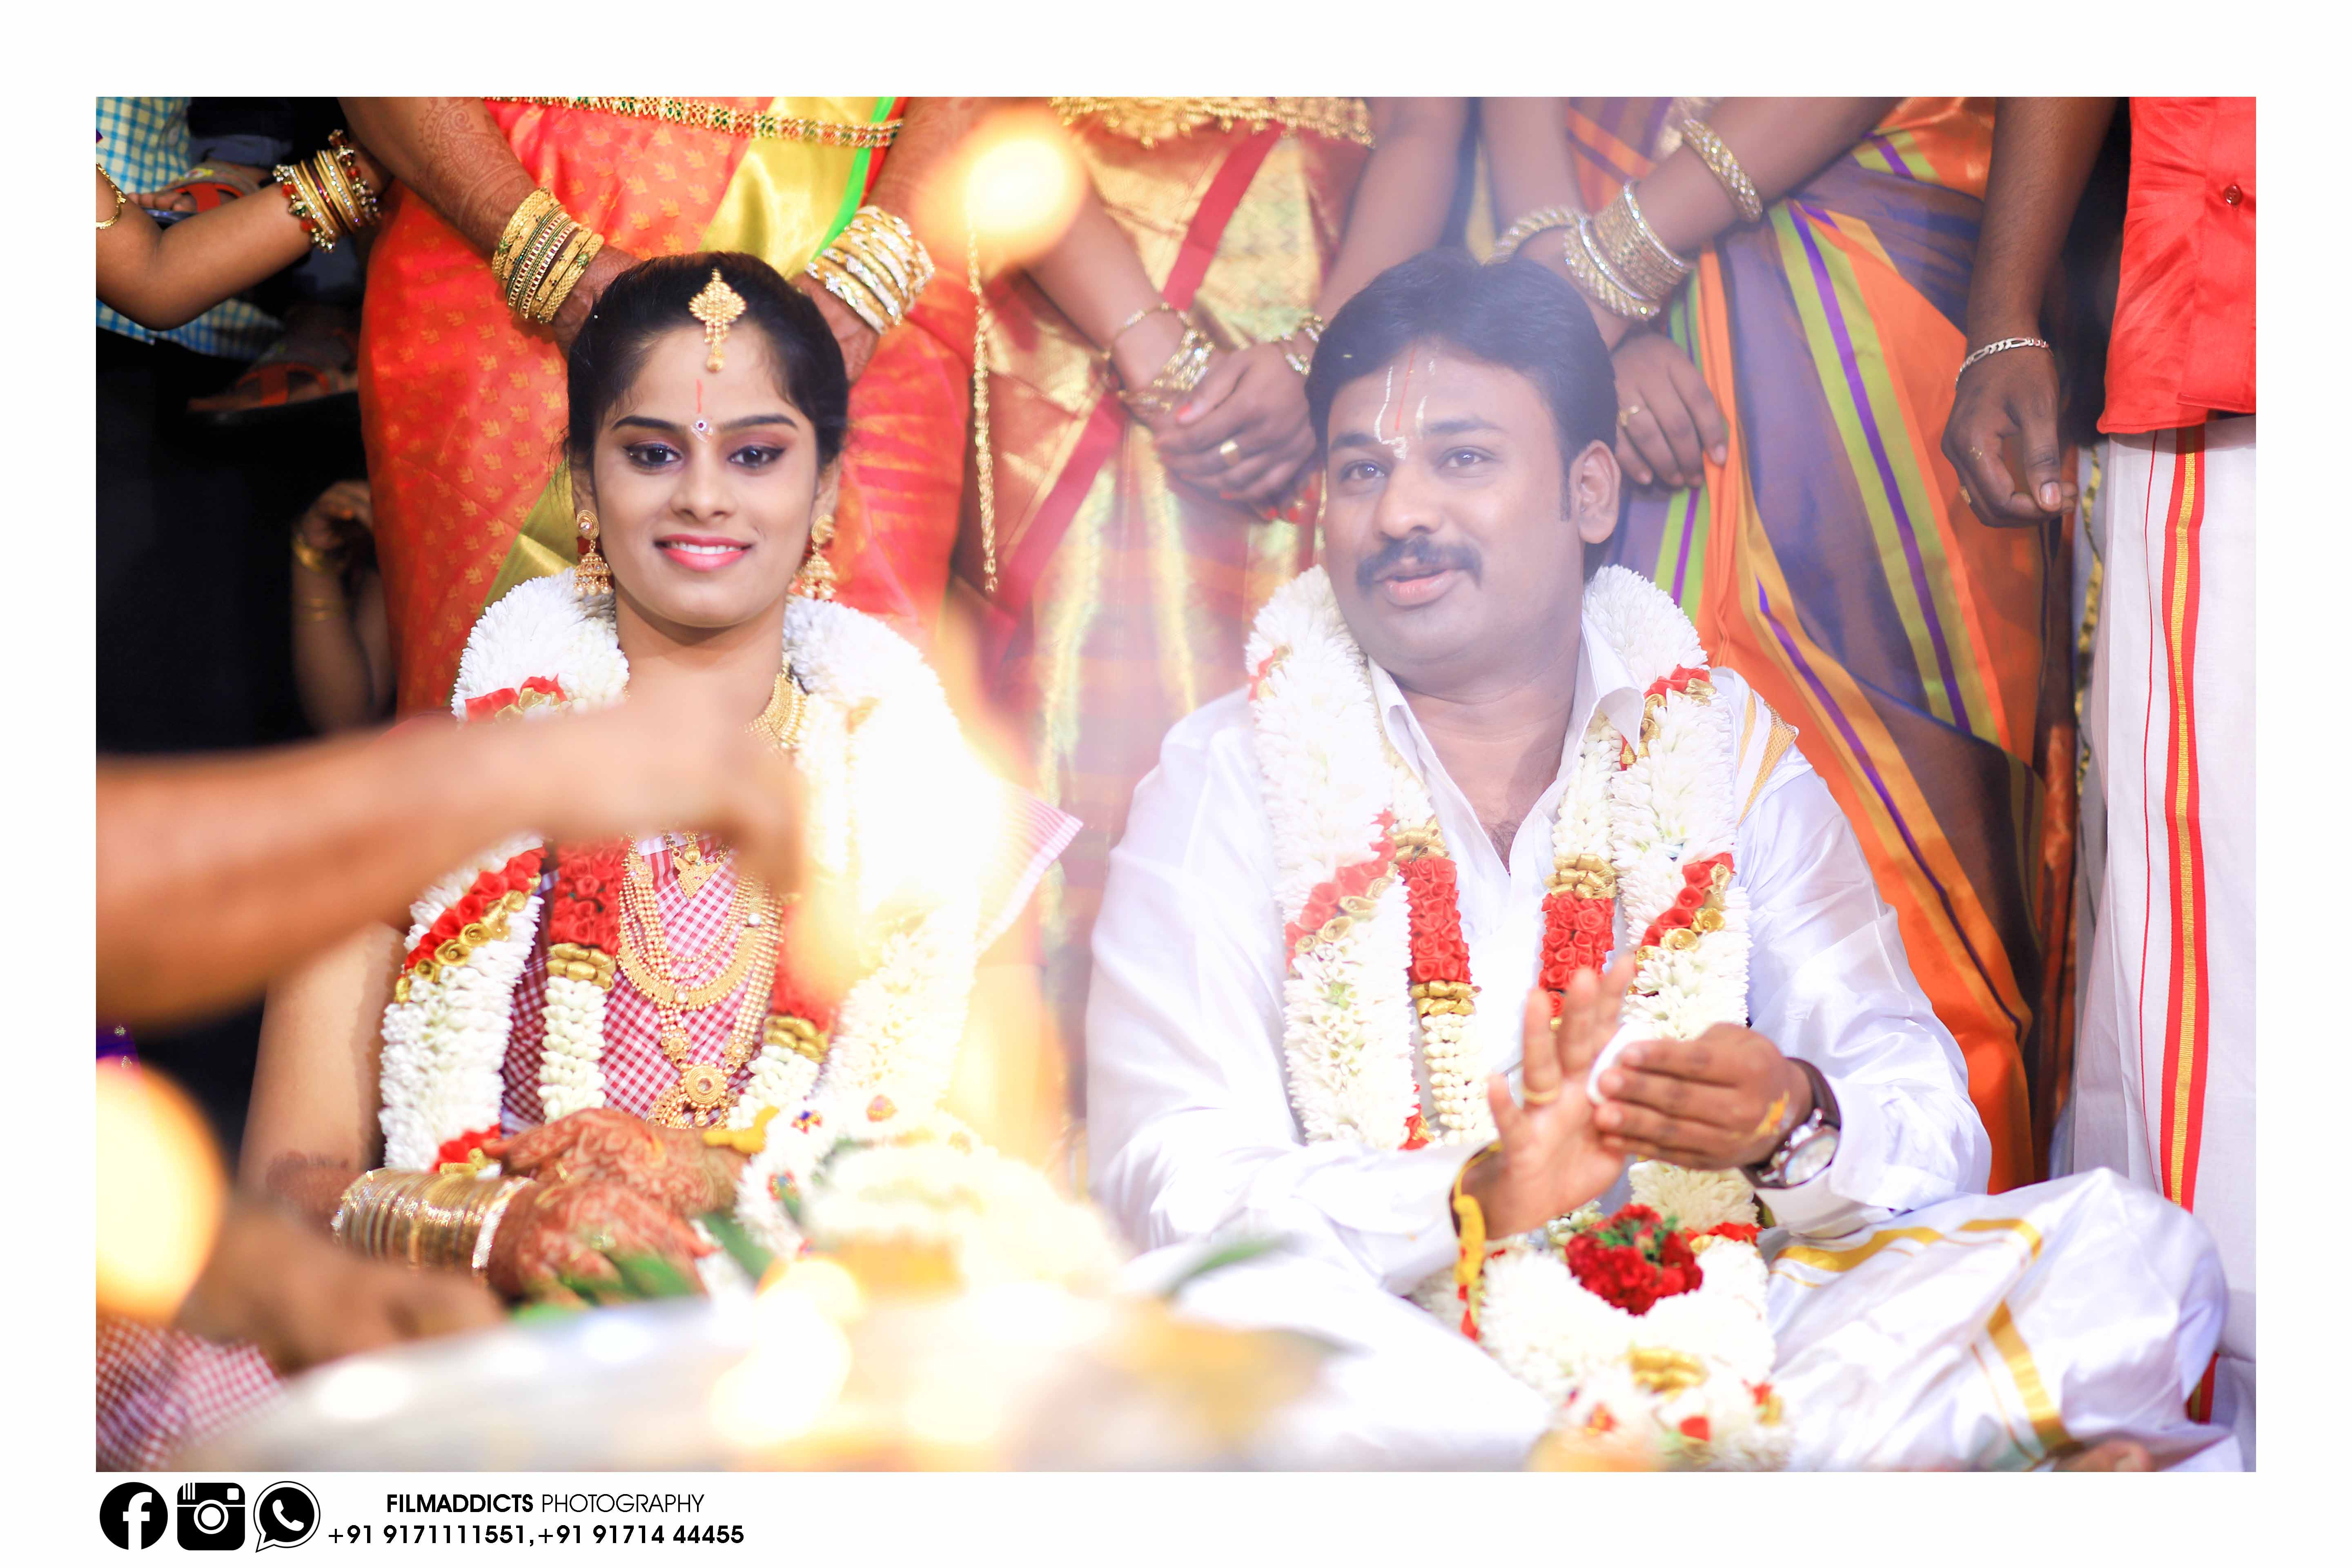 Best Hindu Wedding Photographers in Madurai - Filmaddicts Photography